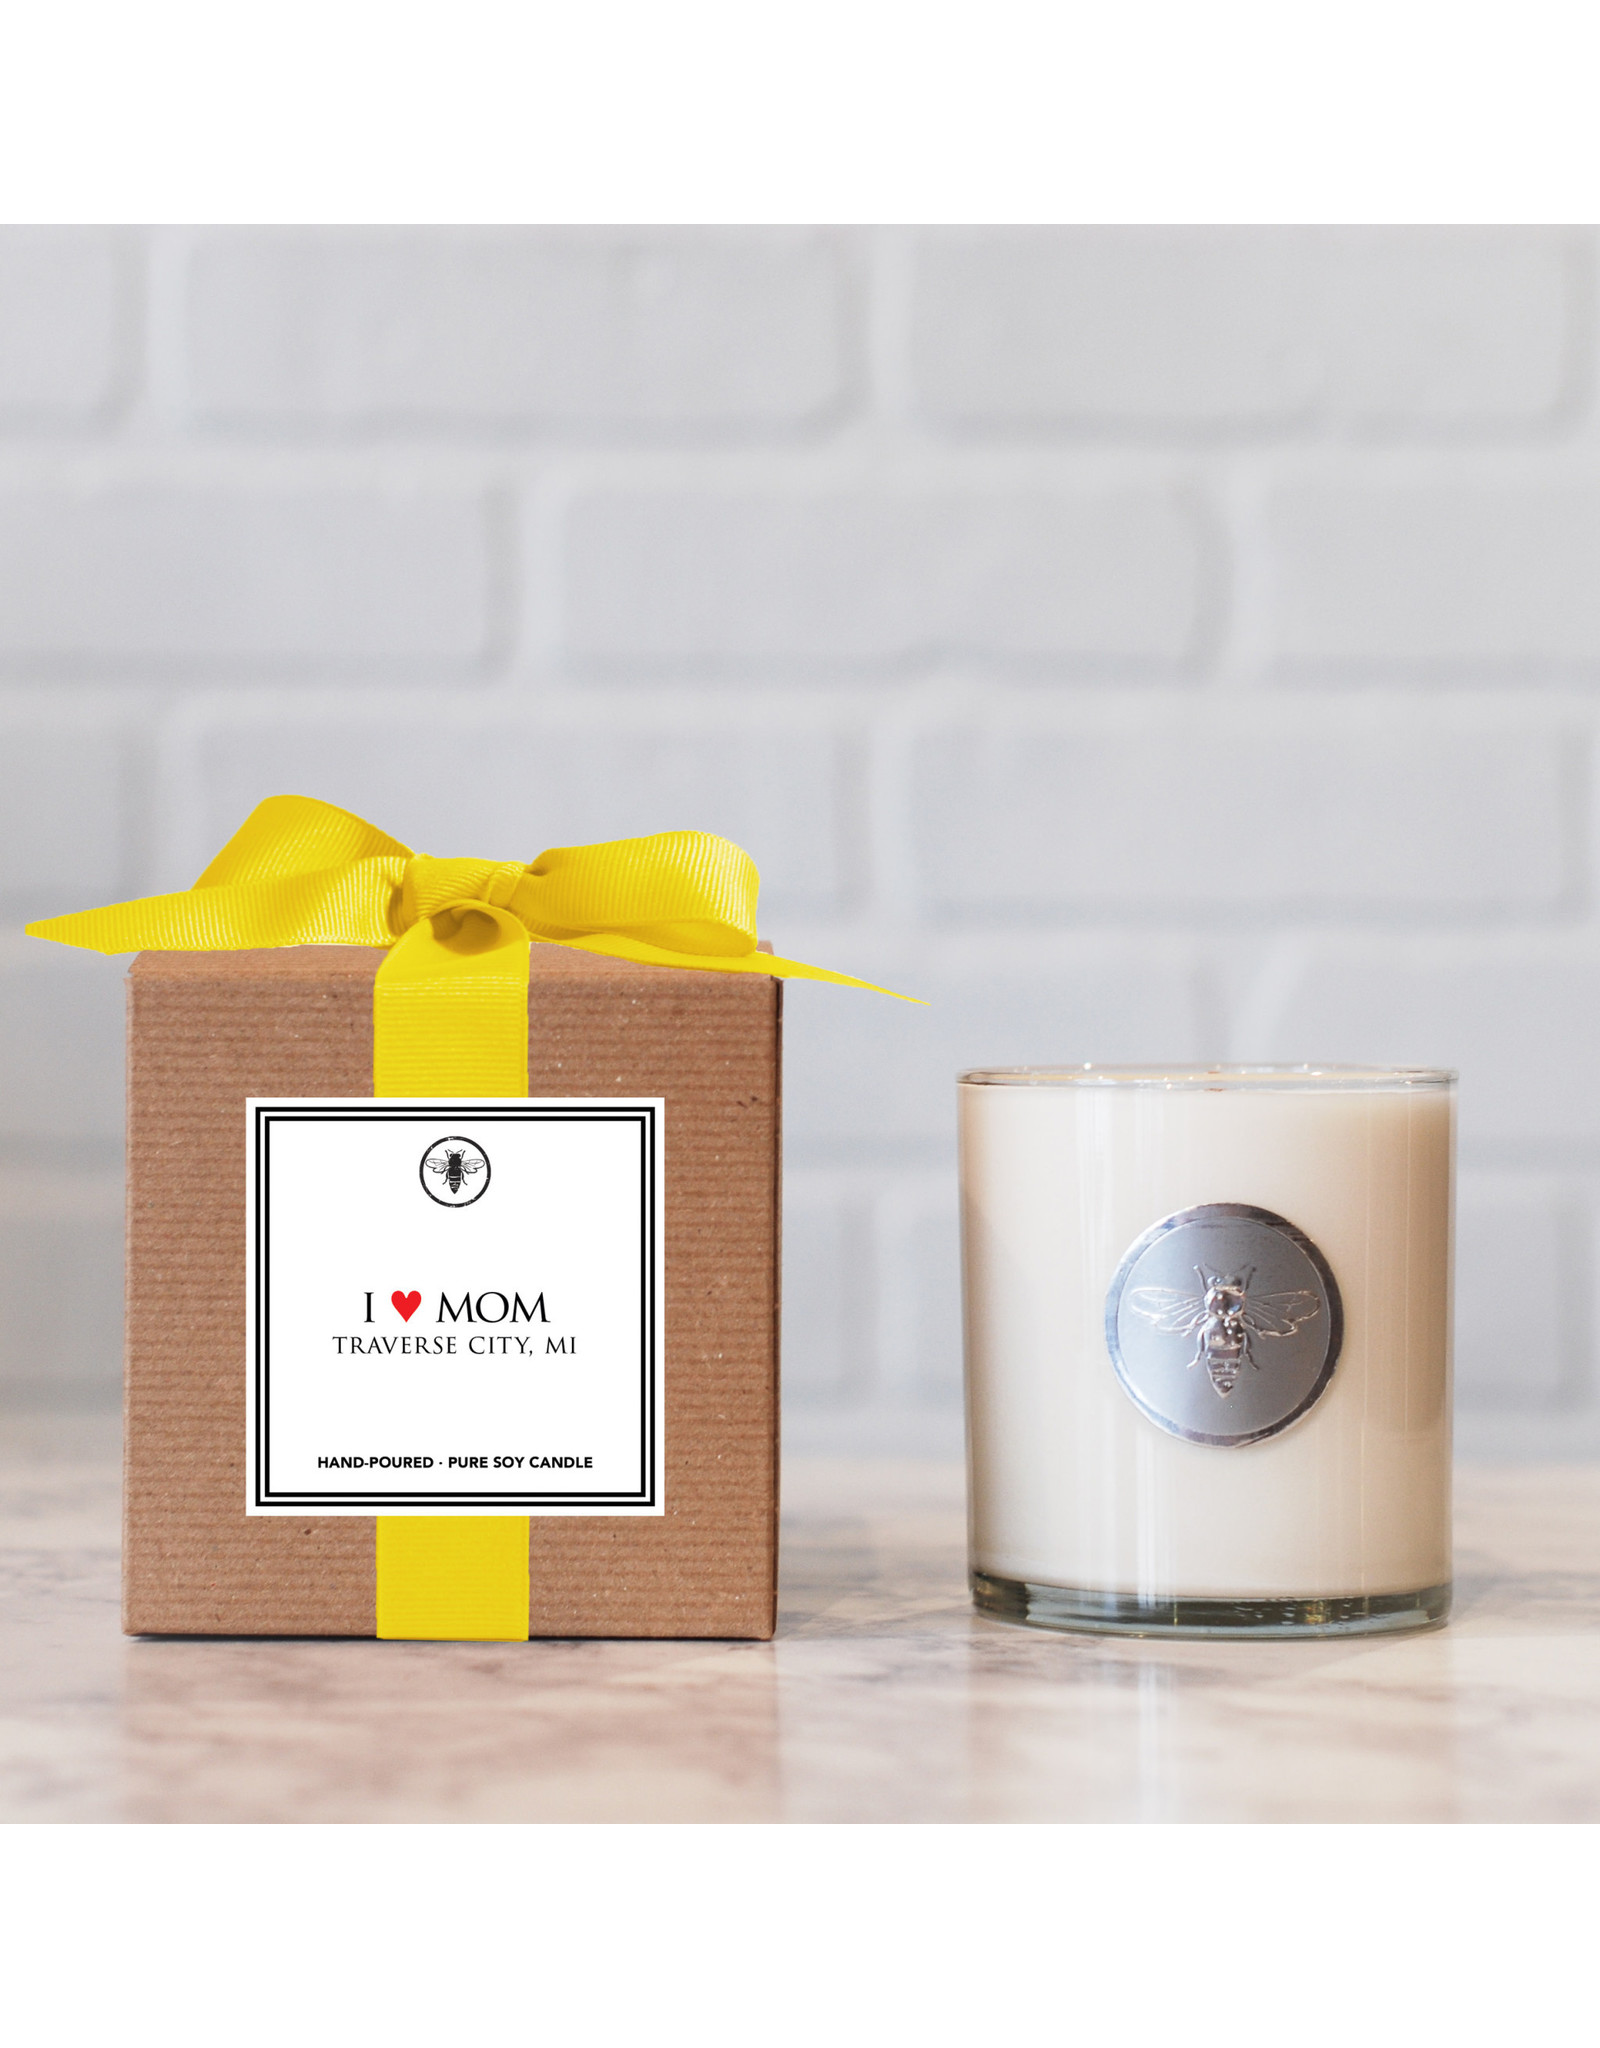 Ella B Candles 11 oz. Pure Soy Candle